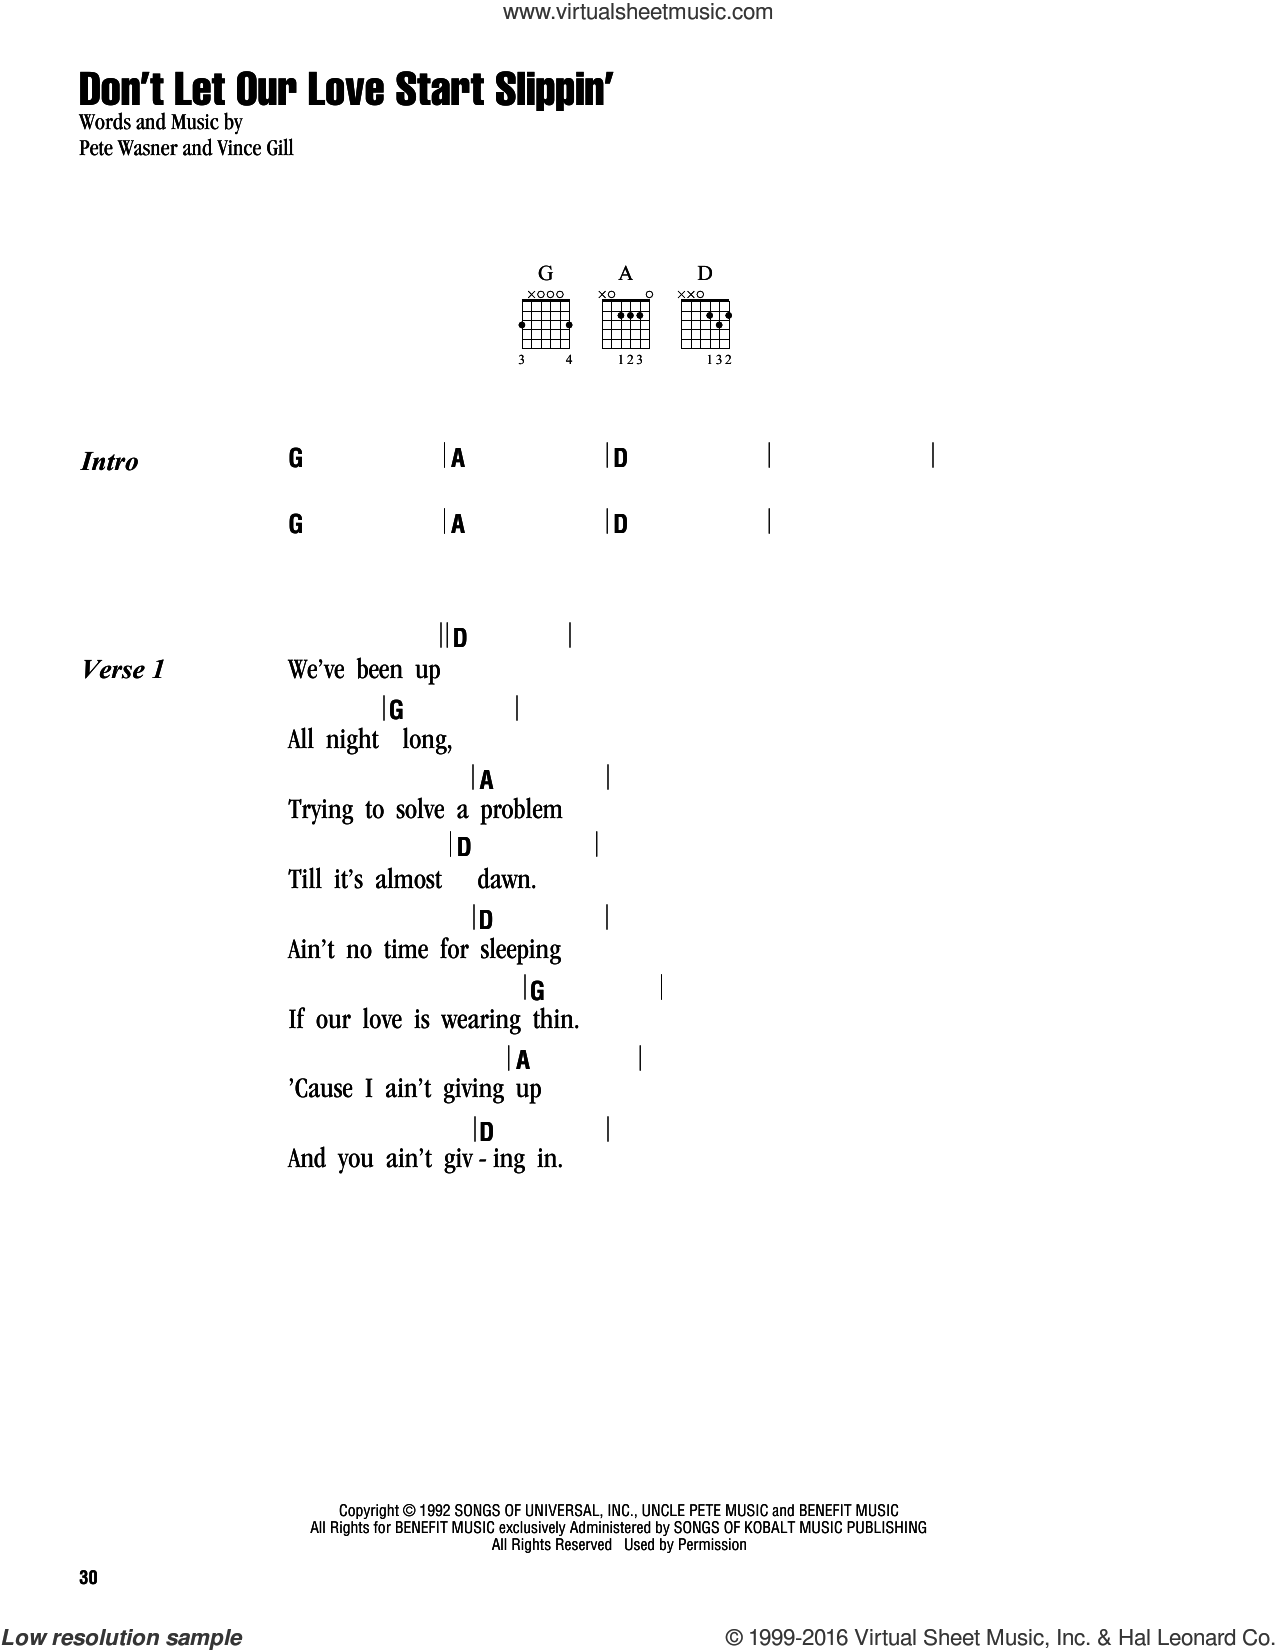 Don't Let Our Love Start Slippin' sheet music for guitar (chords) by Vince Gill. Score Image Preview.